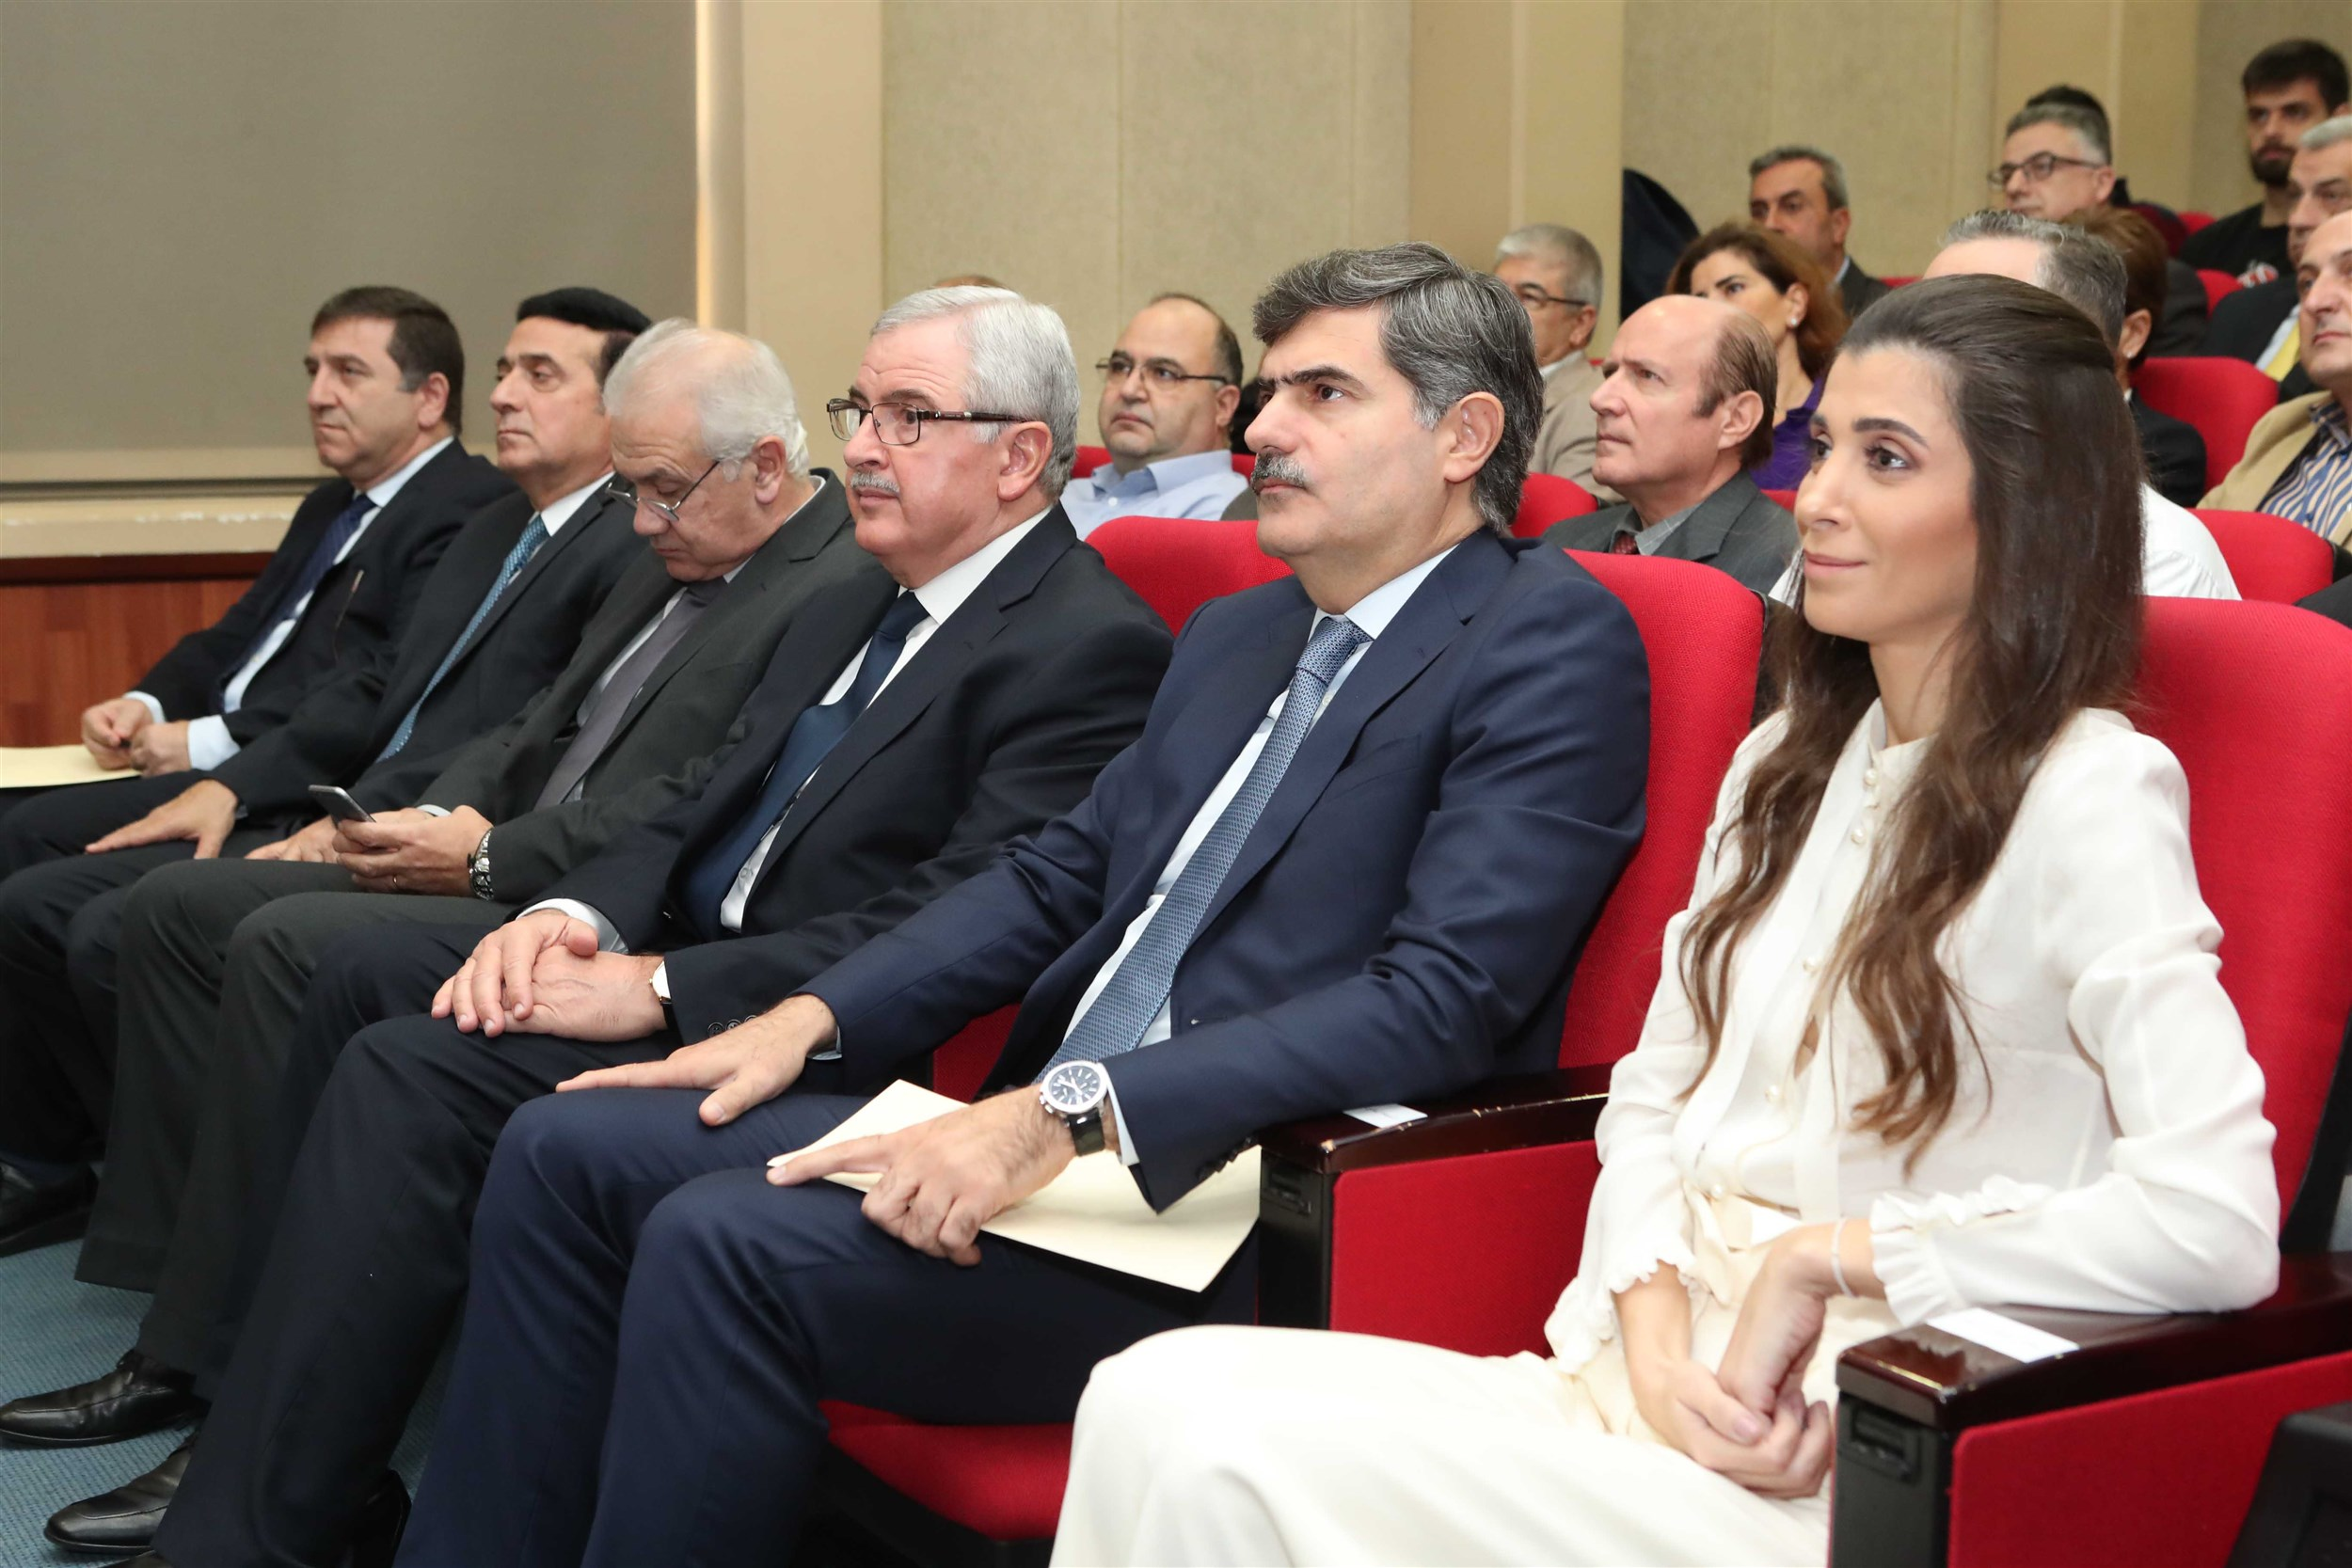 the  main  anticipated  event  that  was  attended  by  dr.  elias  warrak,  the  president  of  the university, mrs inas al jarmakani, member of parliament dr. fadi karam and minister of state for women affairs mr. jean oghasapian.